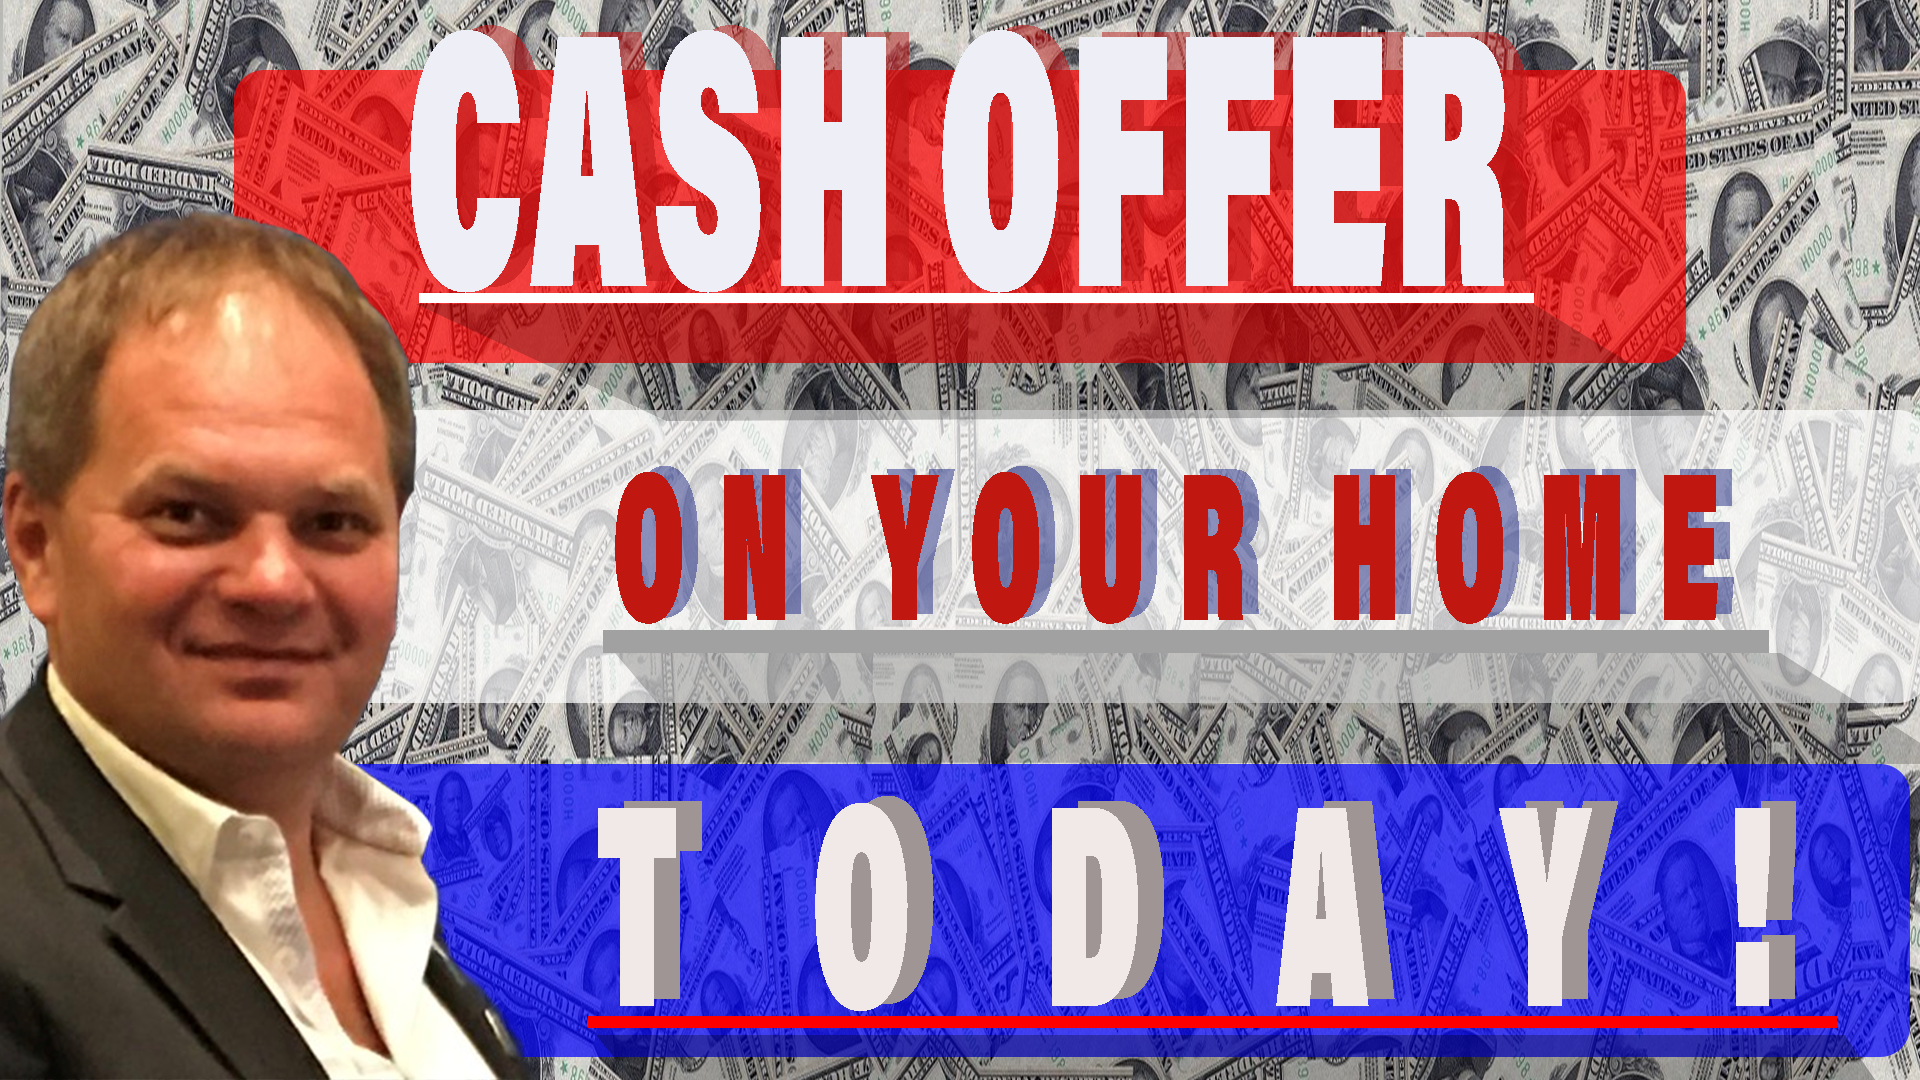 GET A GUARANTEED CASH OFFER ON YOUR HOME TODAY!